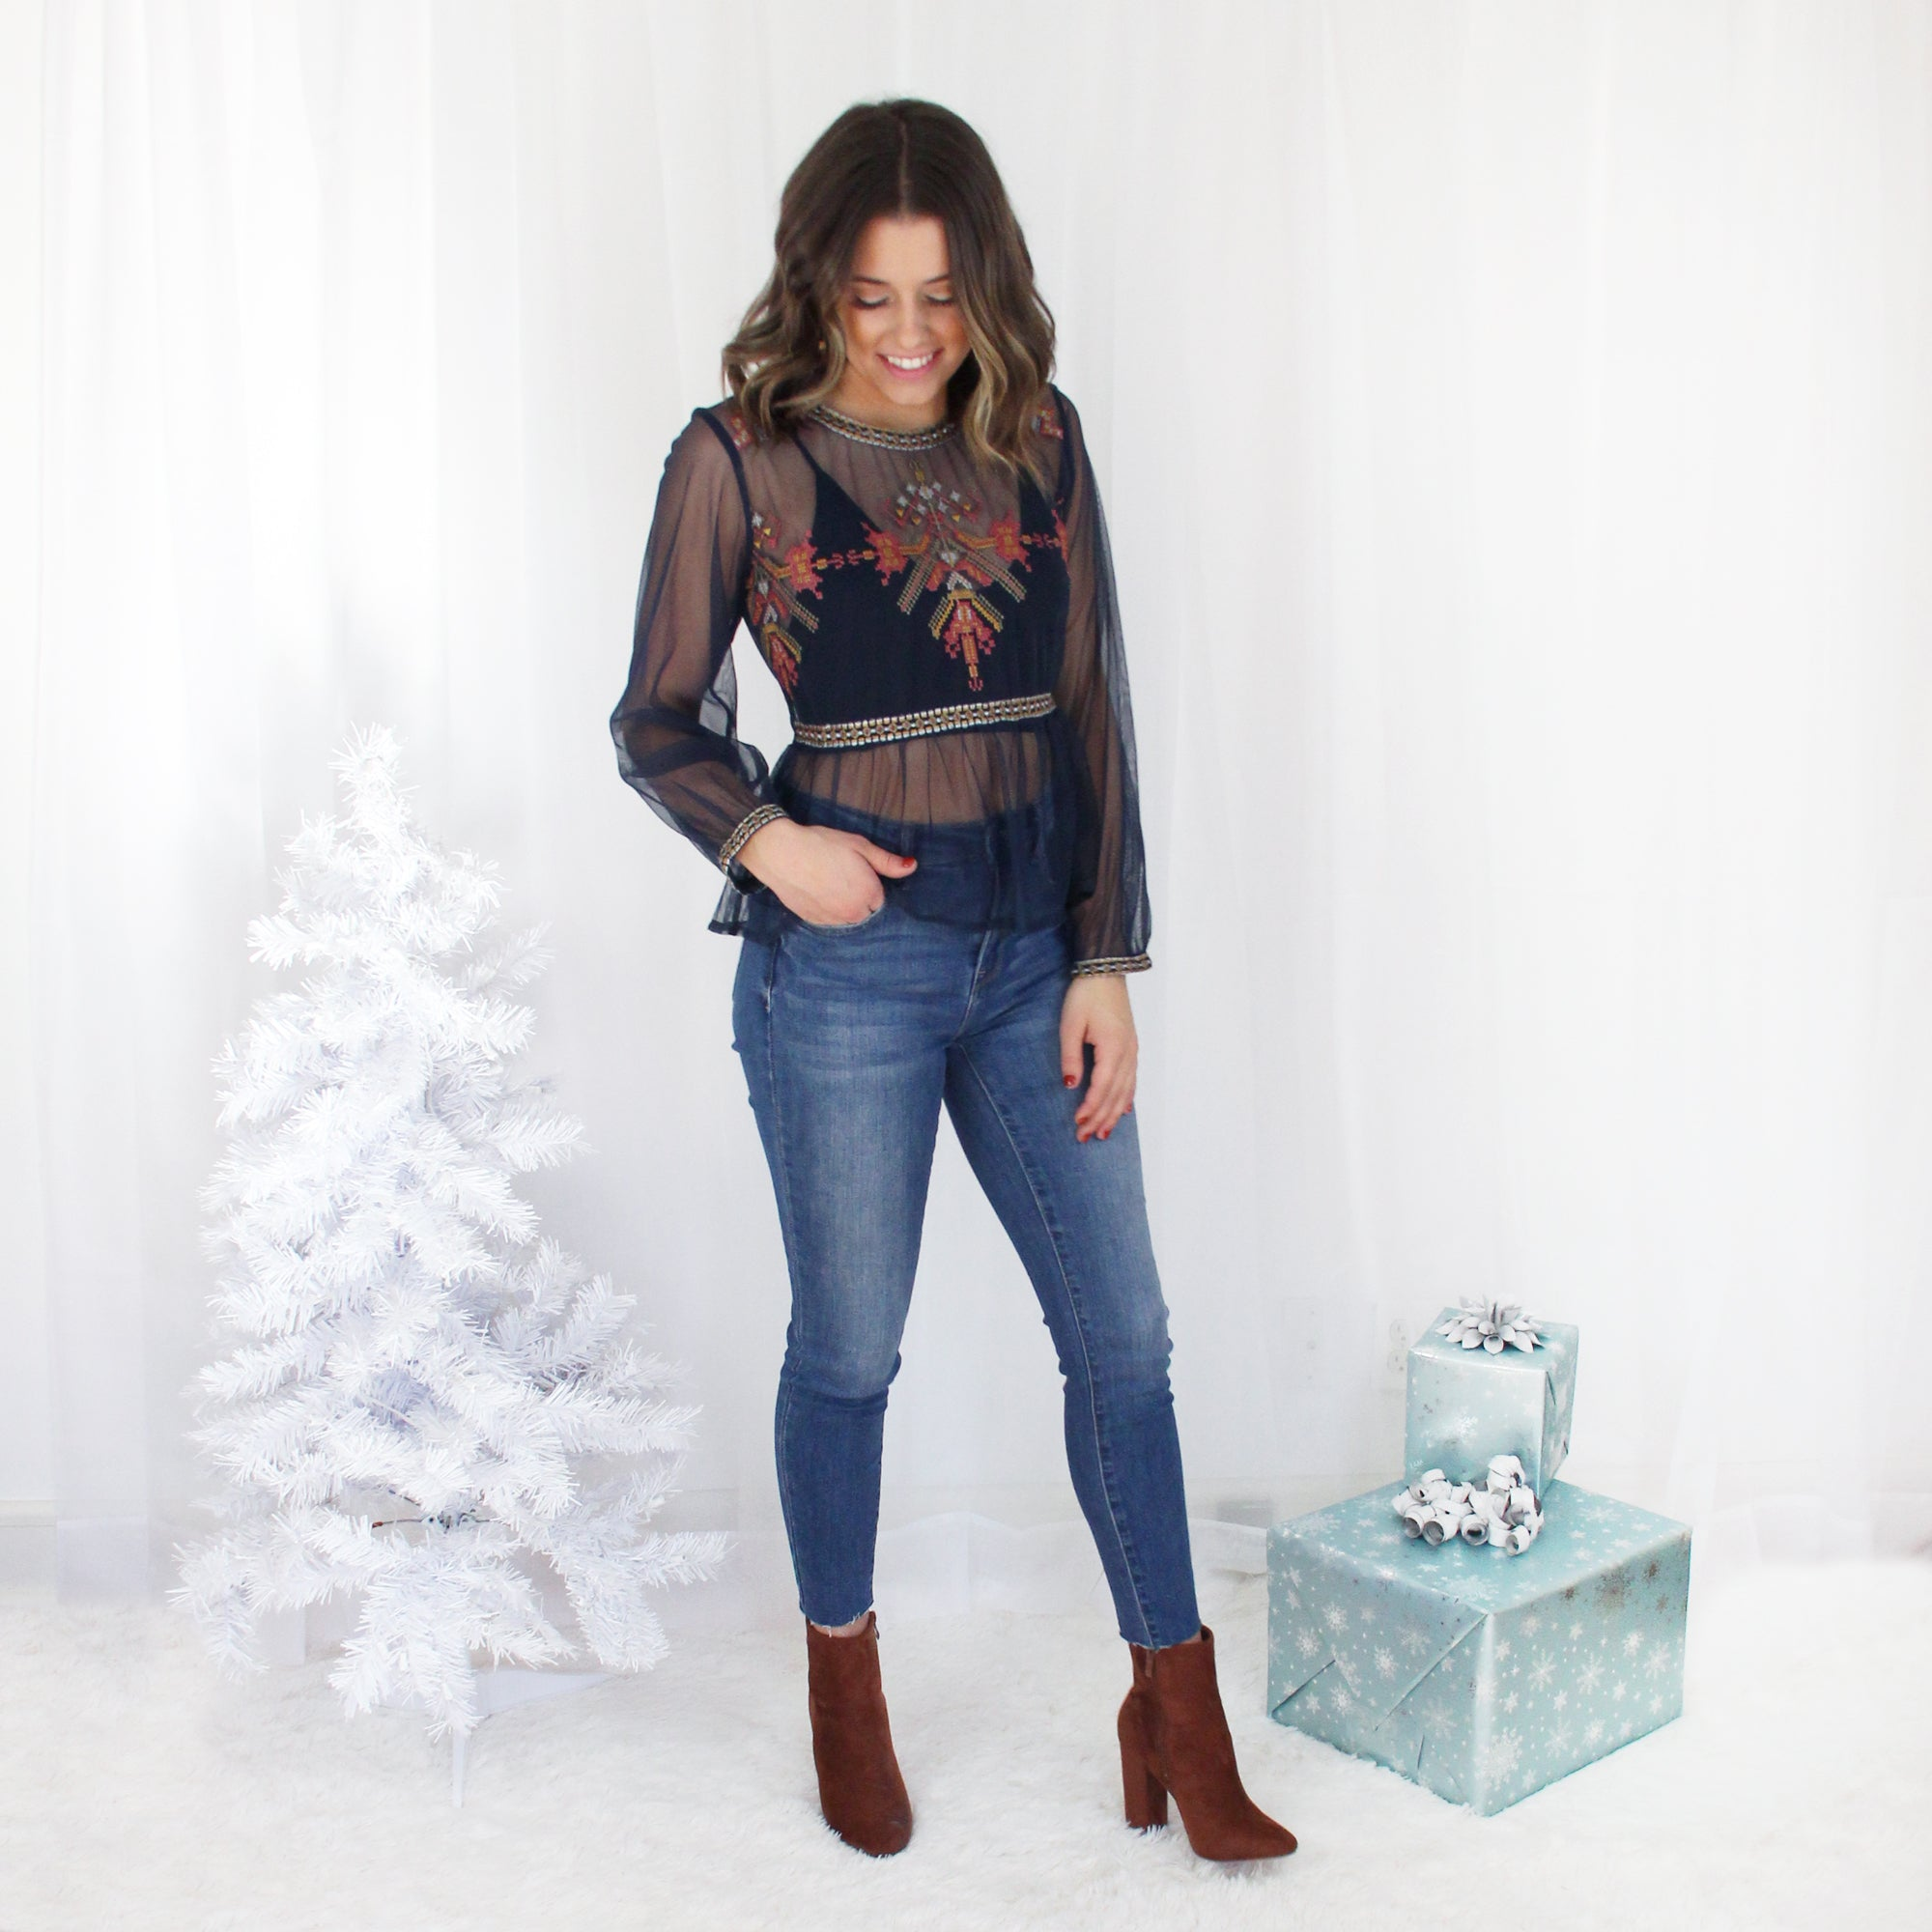 Maison Embroidered Top | Sale